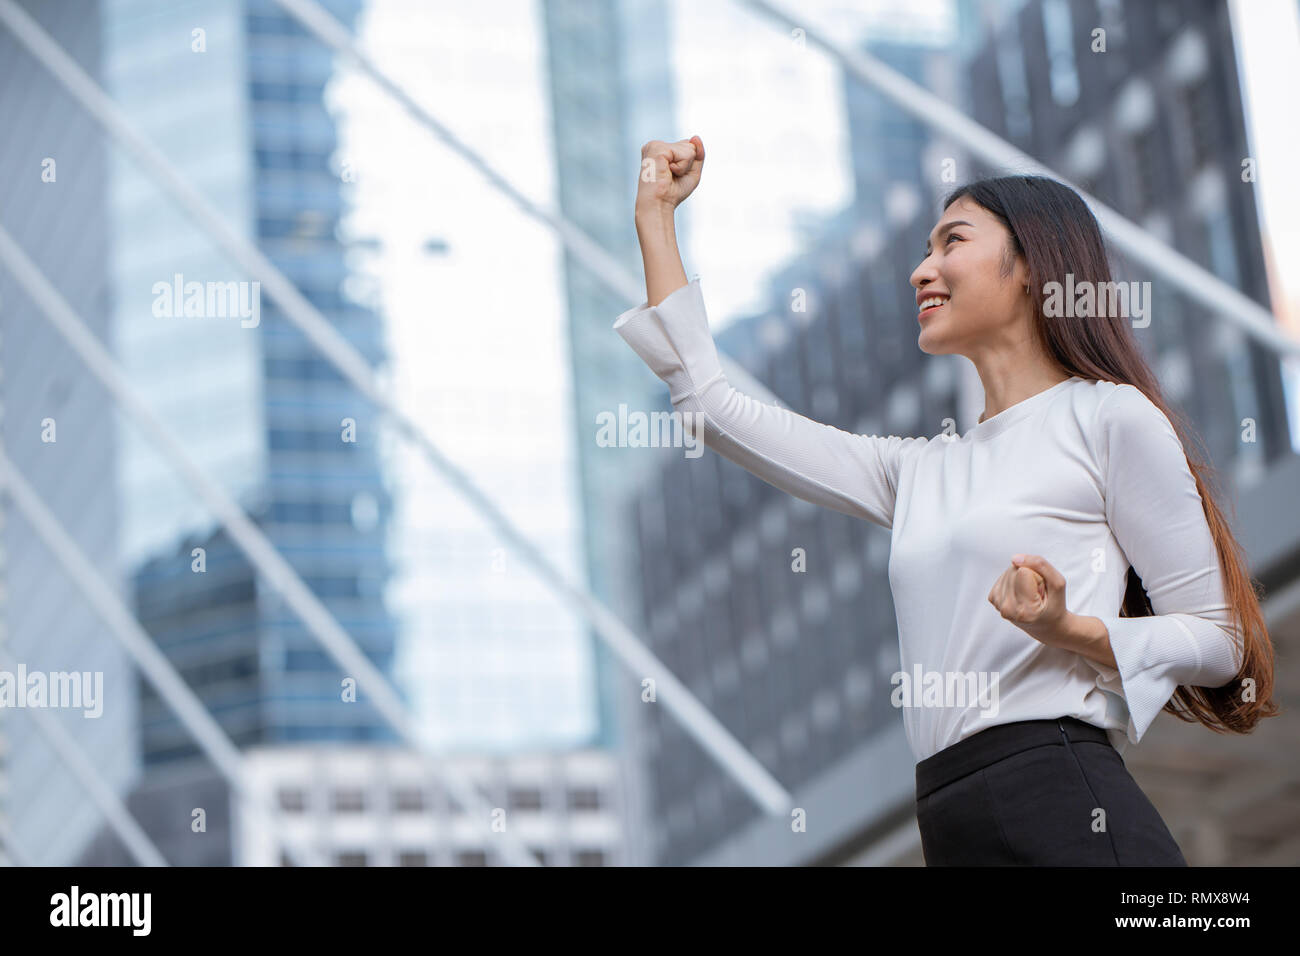 Women Rise Her Hand For Business Winner Success Concept With Office Building Background Stock Photo Alamy